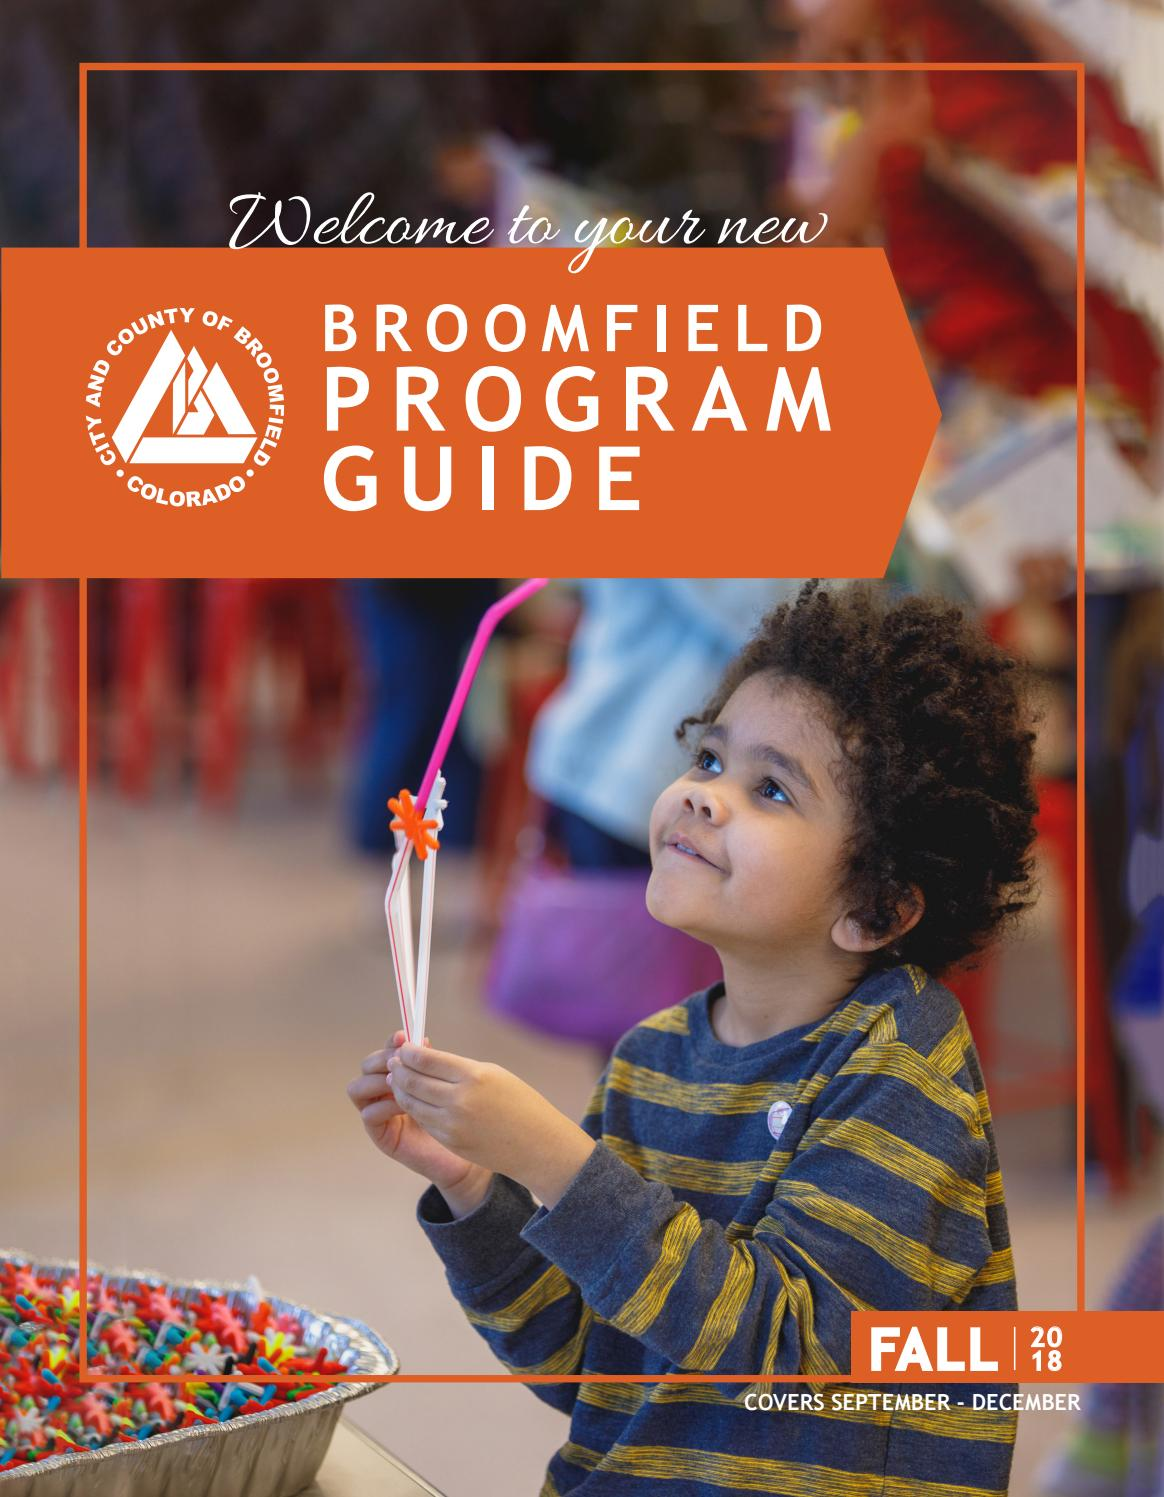 8f5a17f1c0a 2018 Fall Program Guide by City and County of Broomfield - issuu